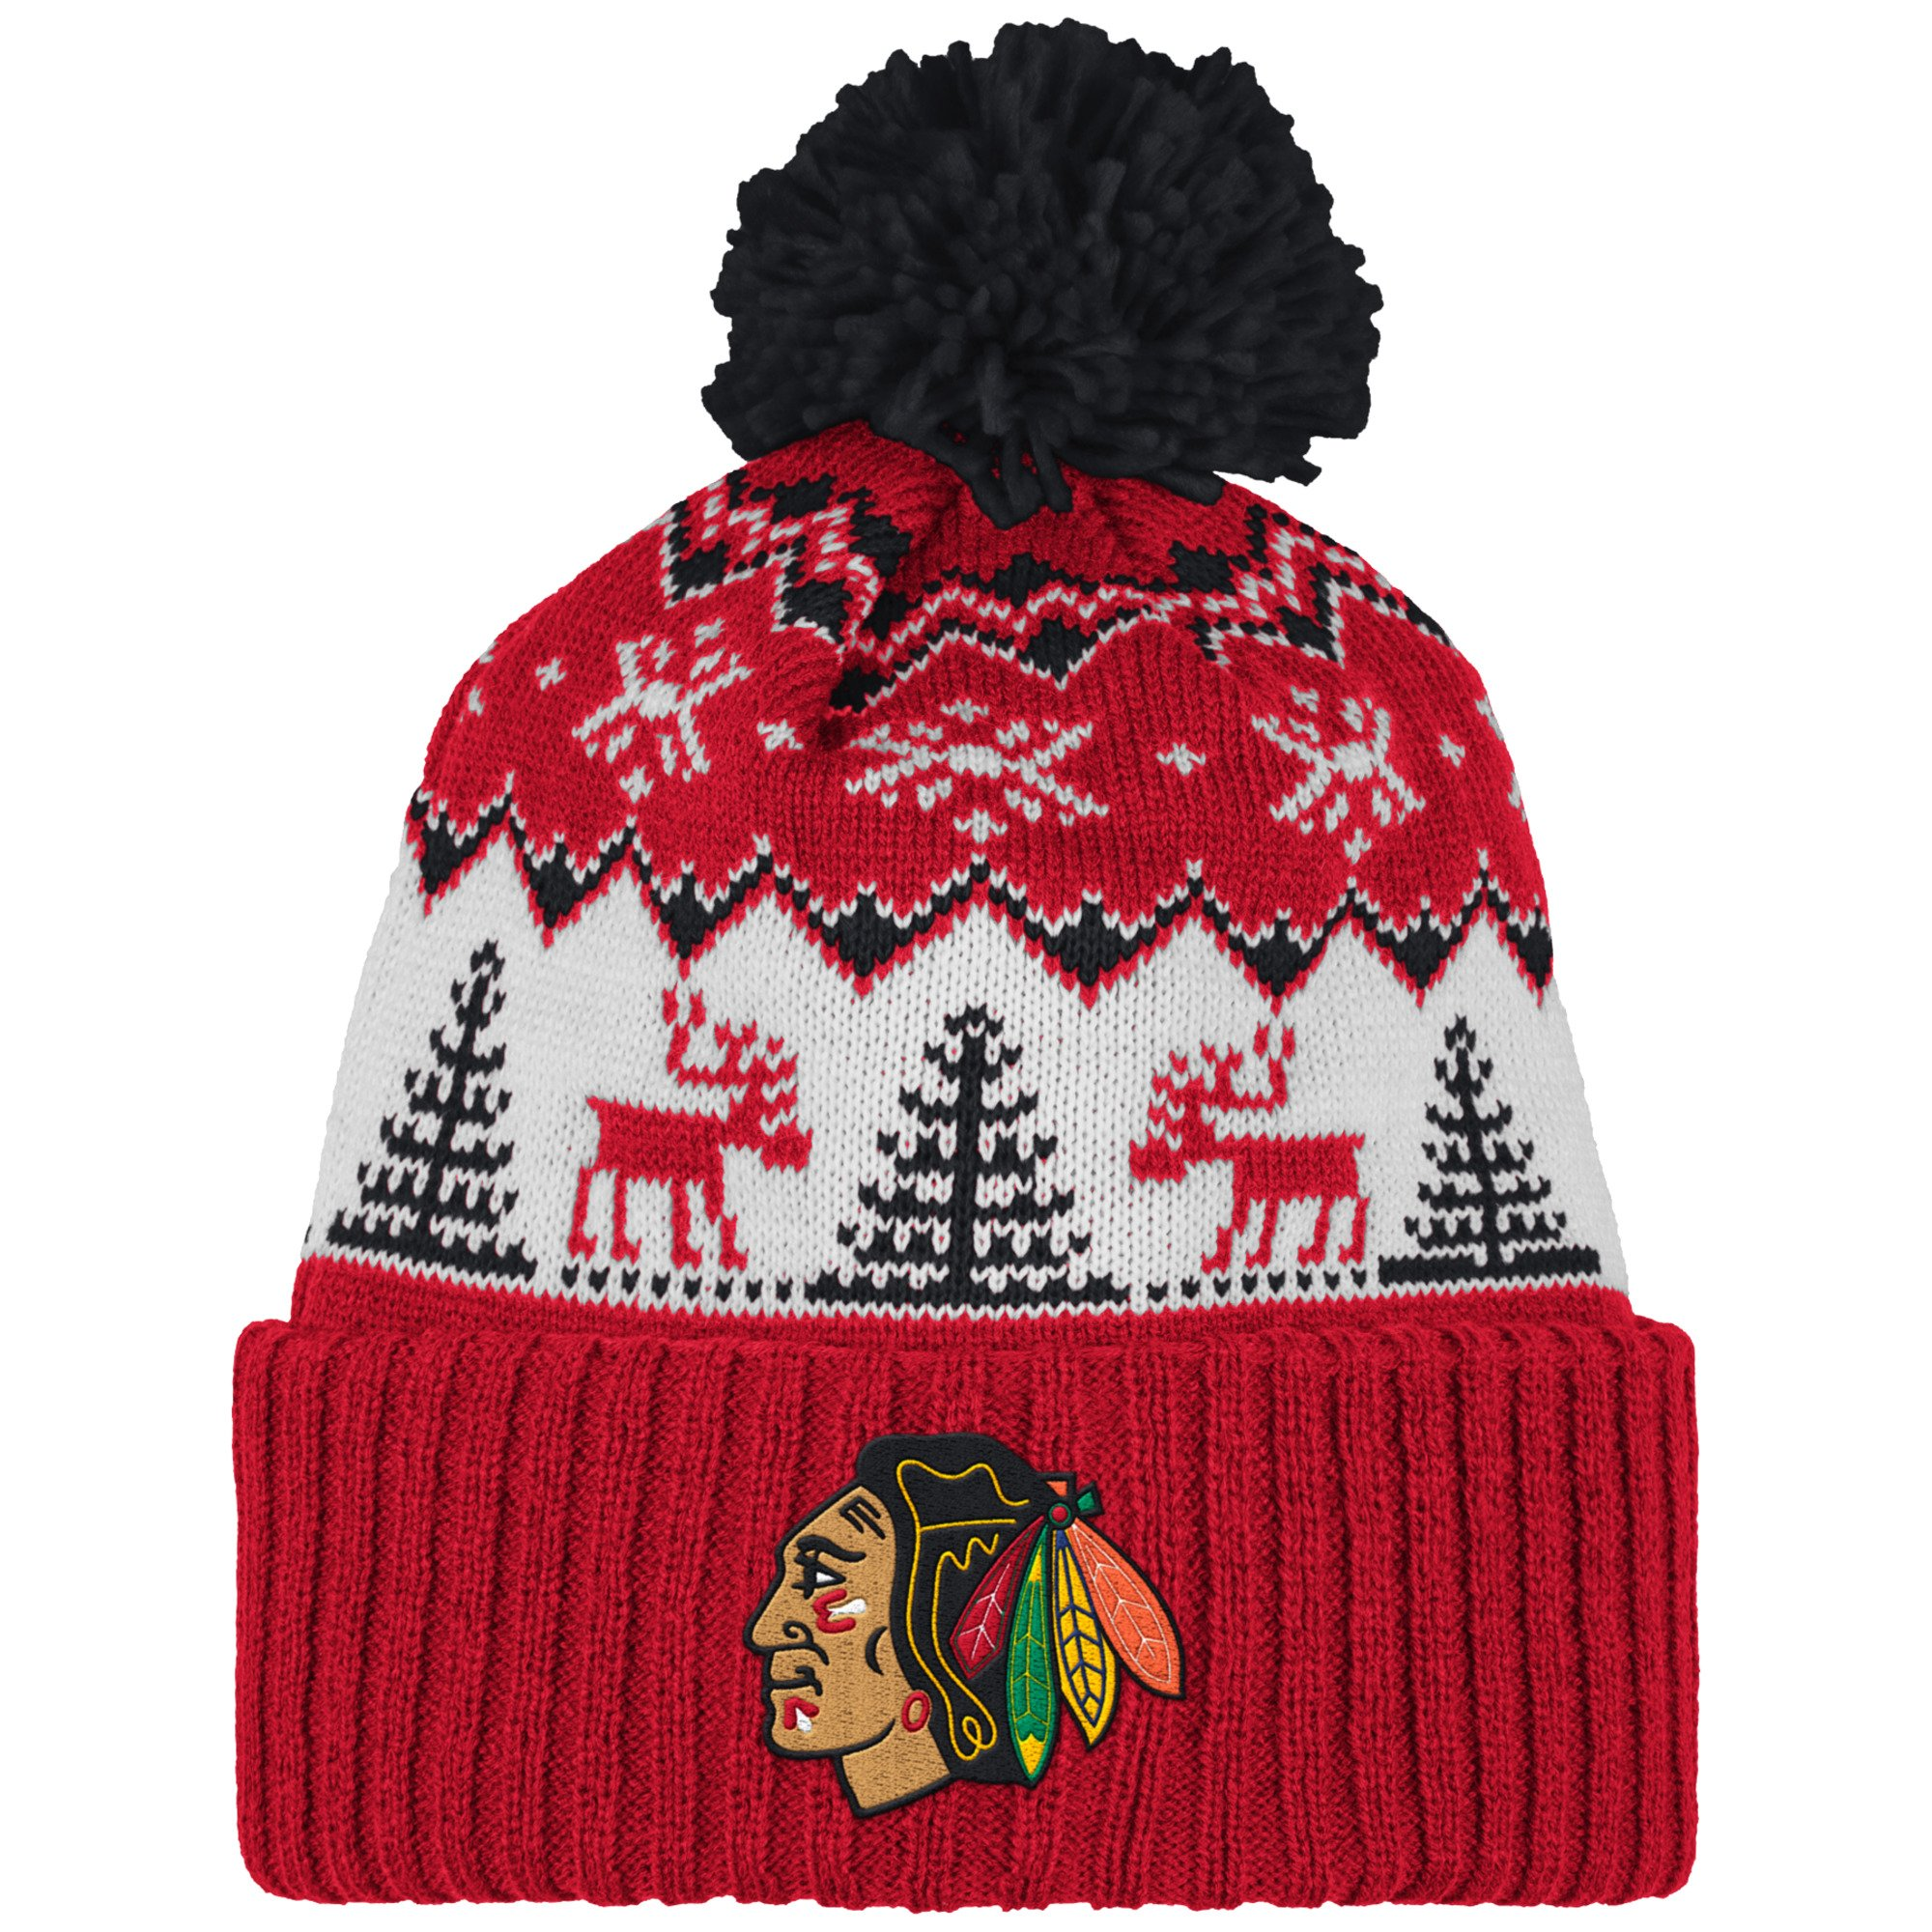 NHL Chicago Blackhawks Reindeer Cuffed Pom Knit, One Size, Red